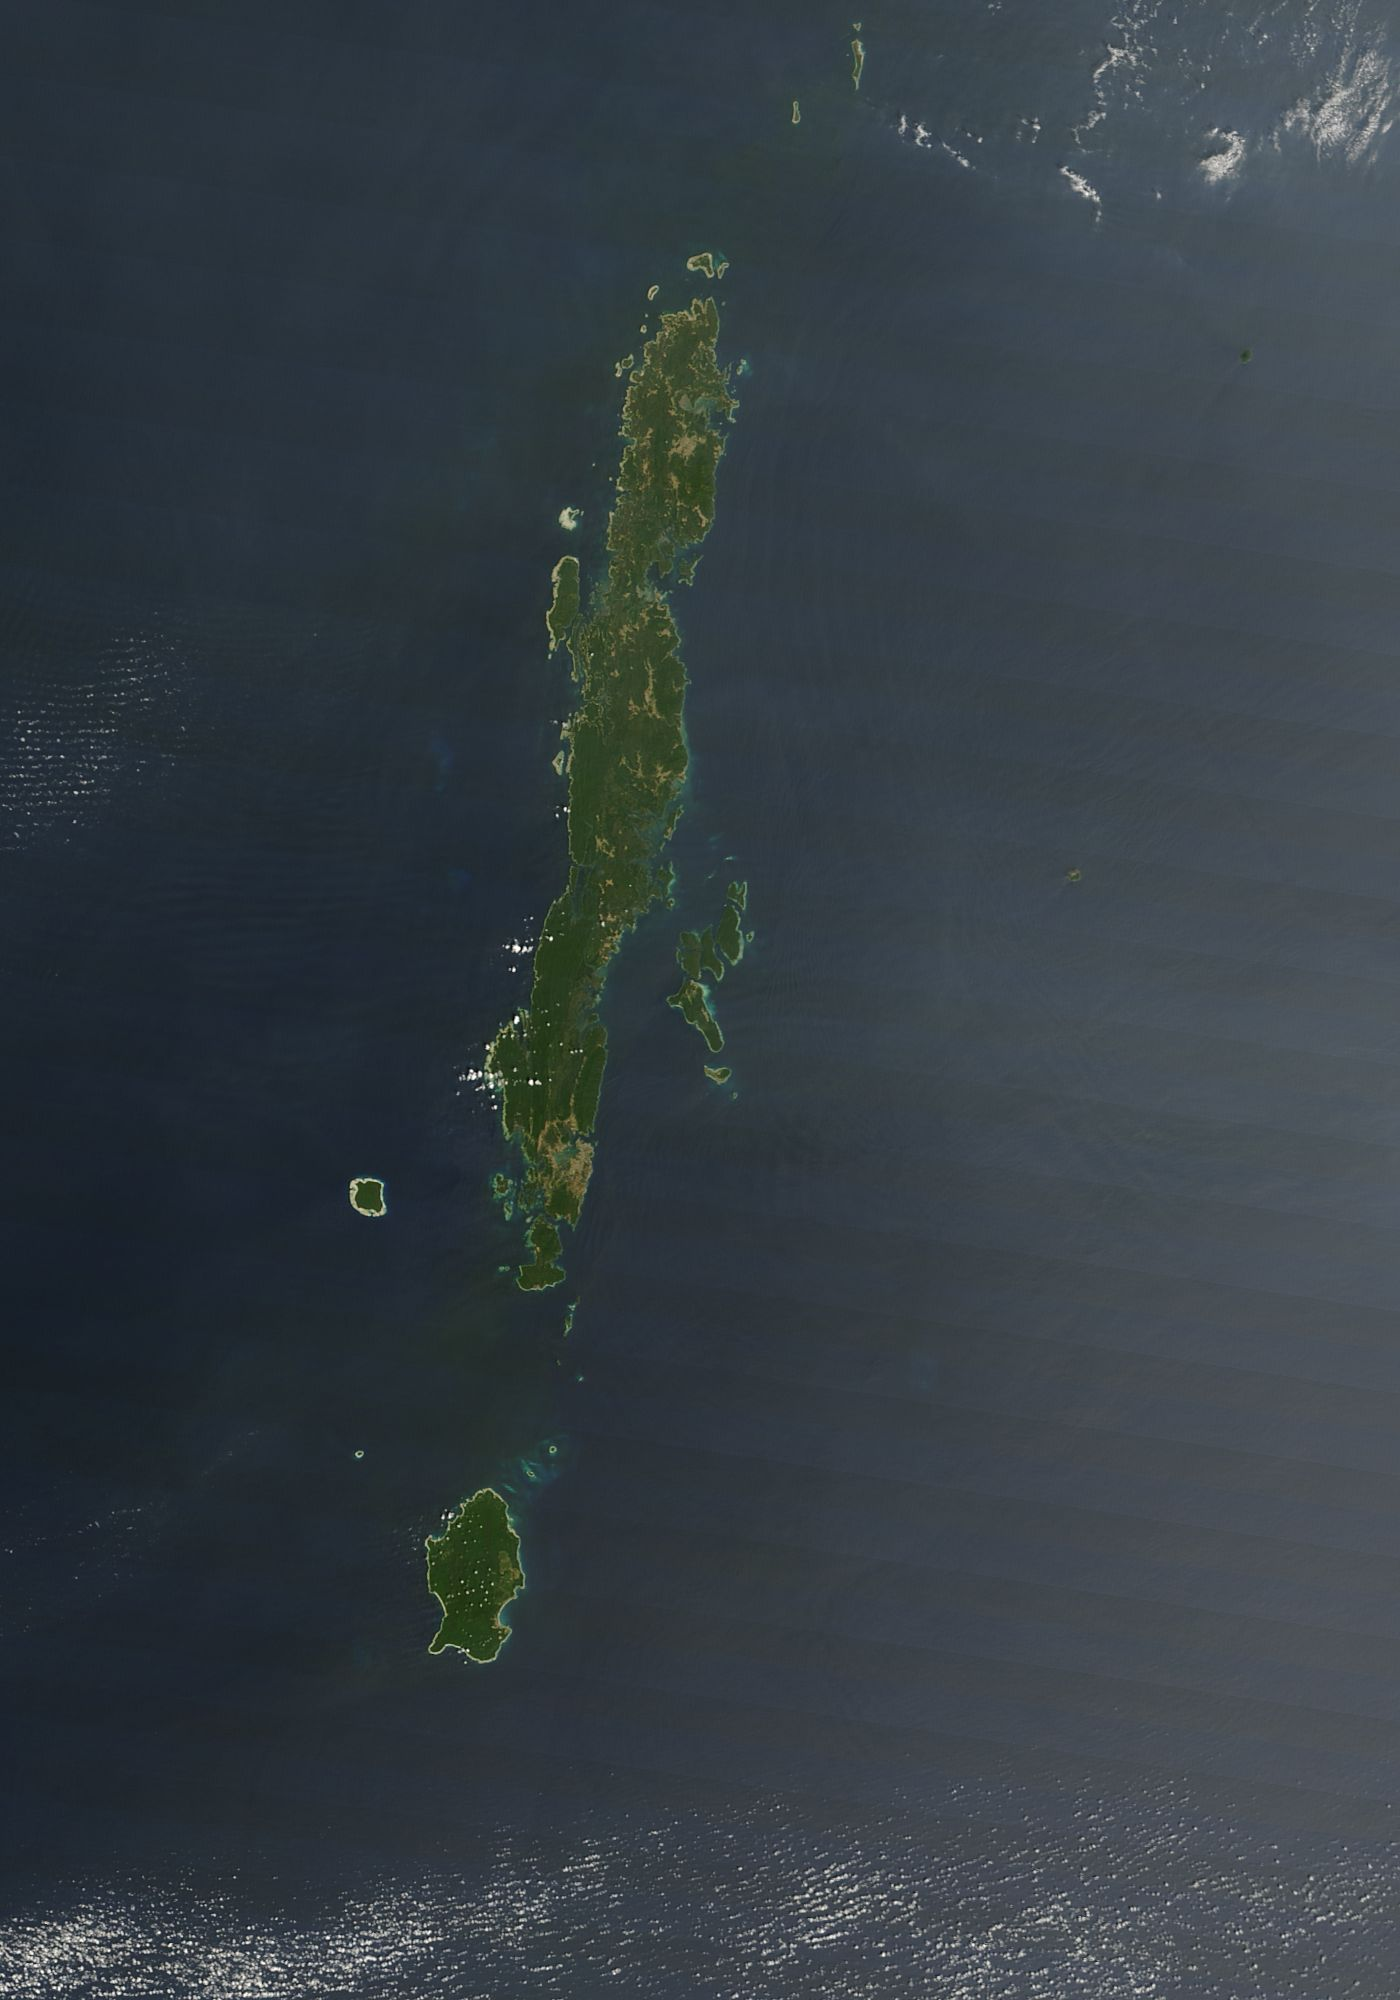 Andaman Islands, Bay of Bengal - related image preview